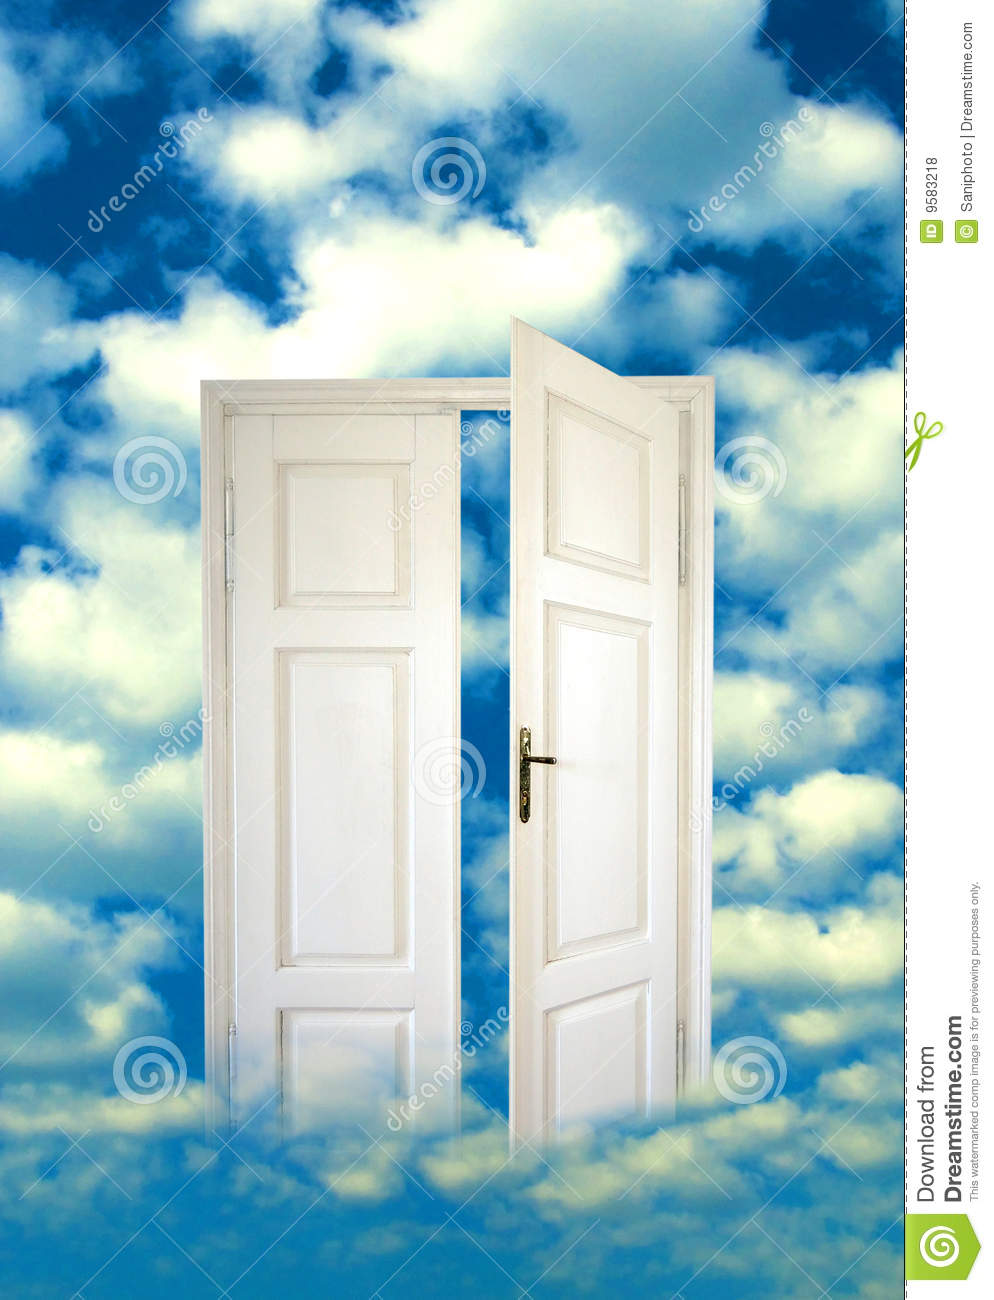 Open door in the sky royalty free stock photos image for Porte ouverte